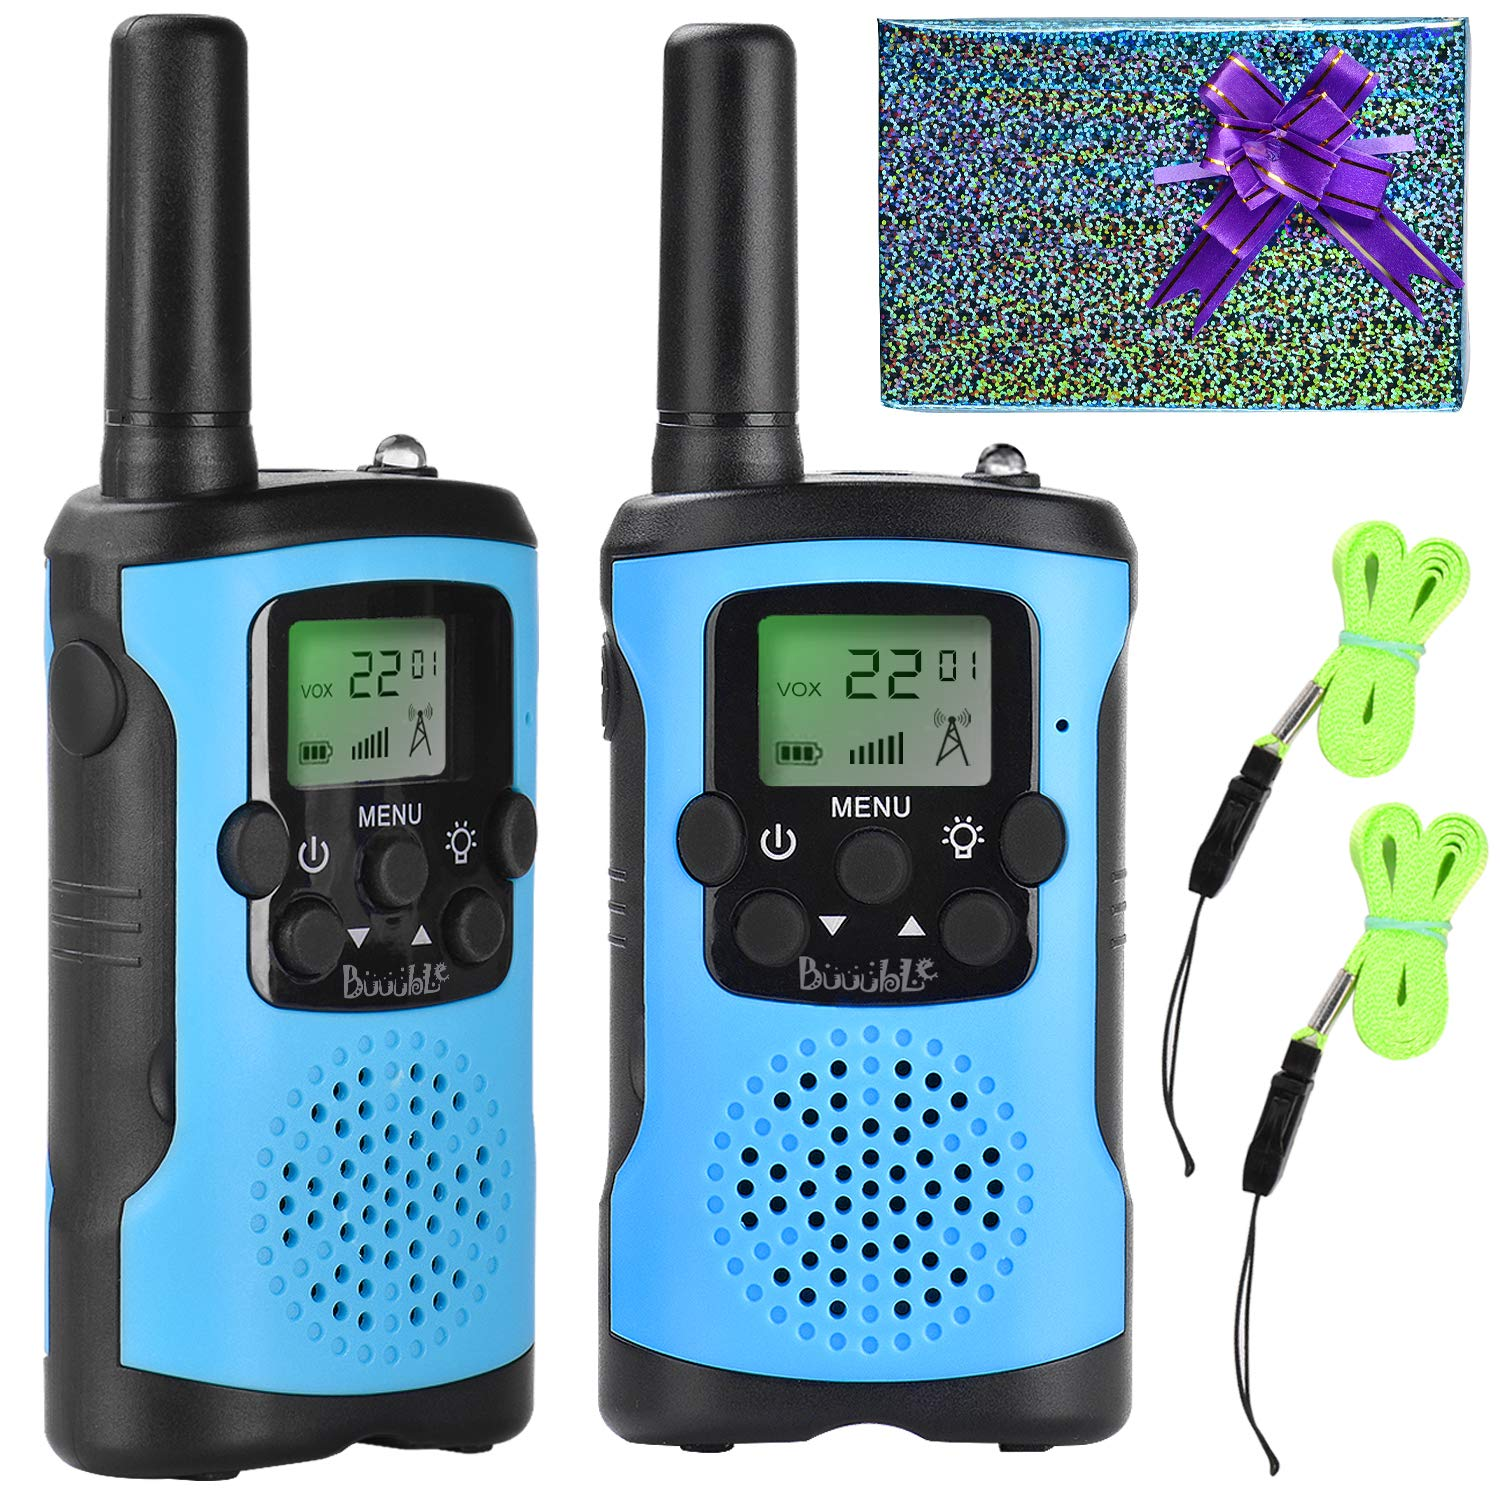 Walkie Talkies for Kids 22 Channel 3 Mile Long Range Many People Use It to Prevent Children's Myopia and Away from Electronic Games Best Birthday Gifts for 4-6 Year Old Boys Girls More Fun Game (Blue) by Buuuble (Image #1)